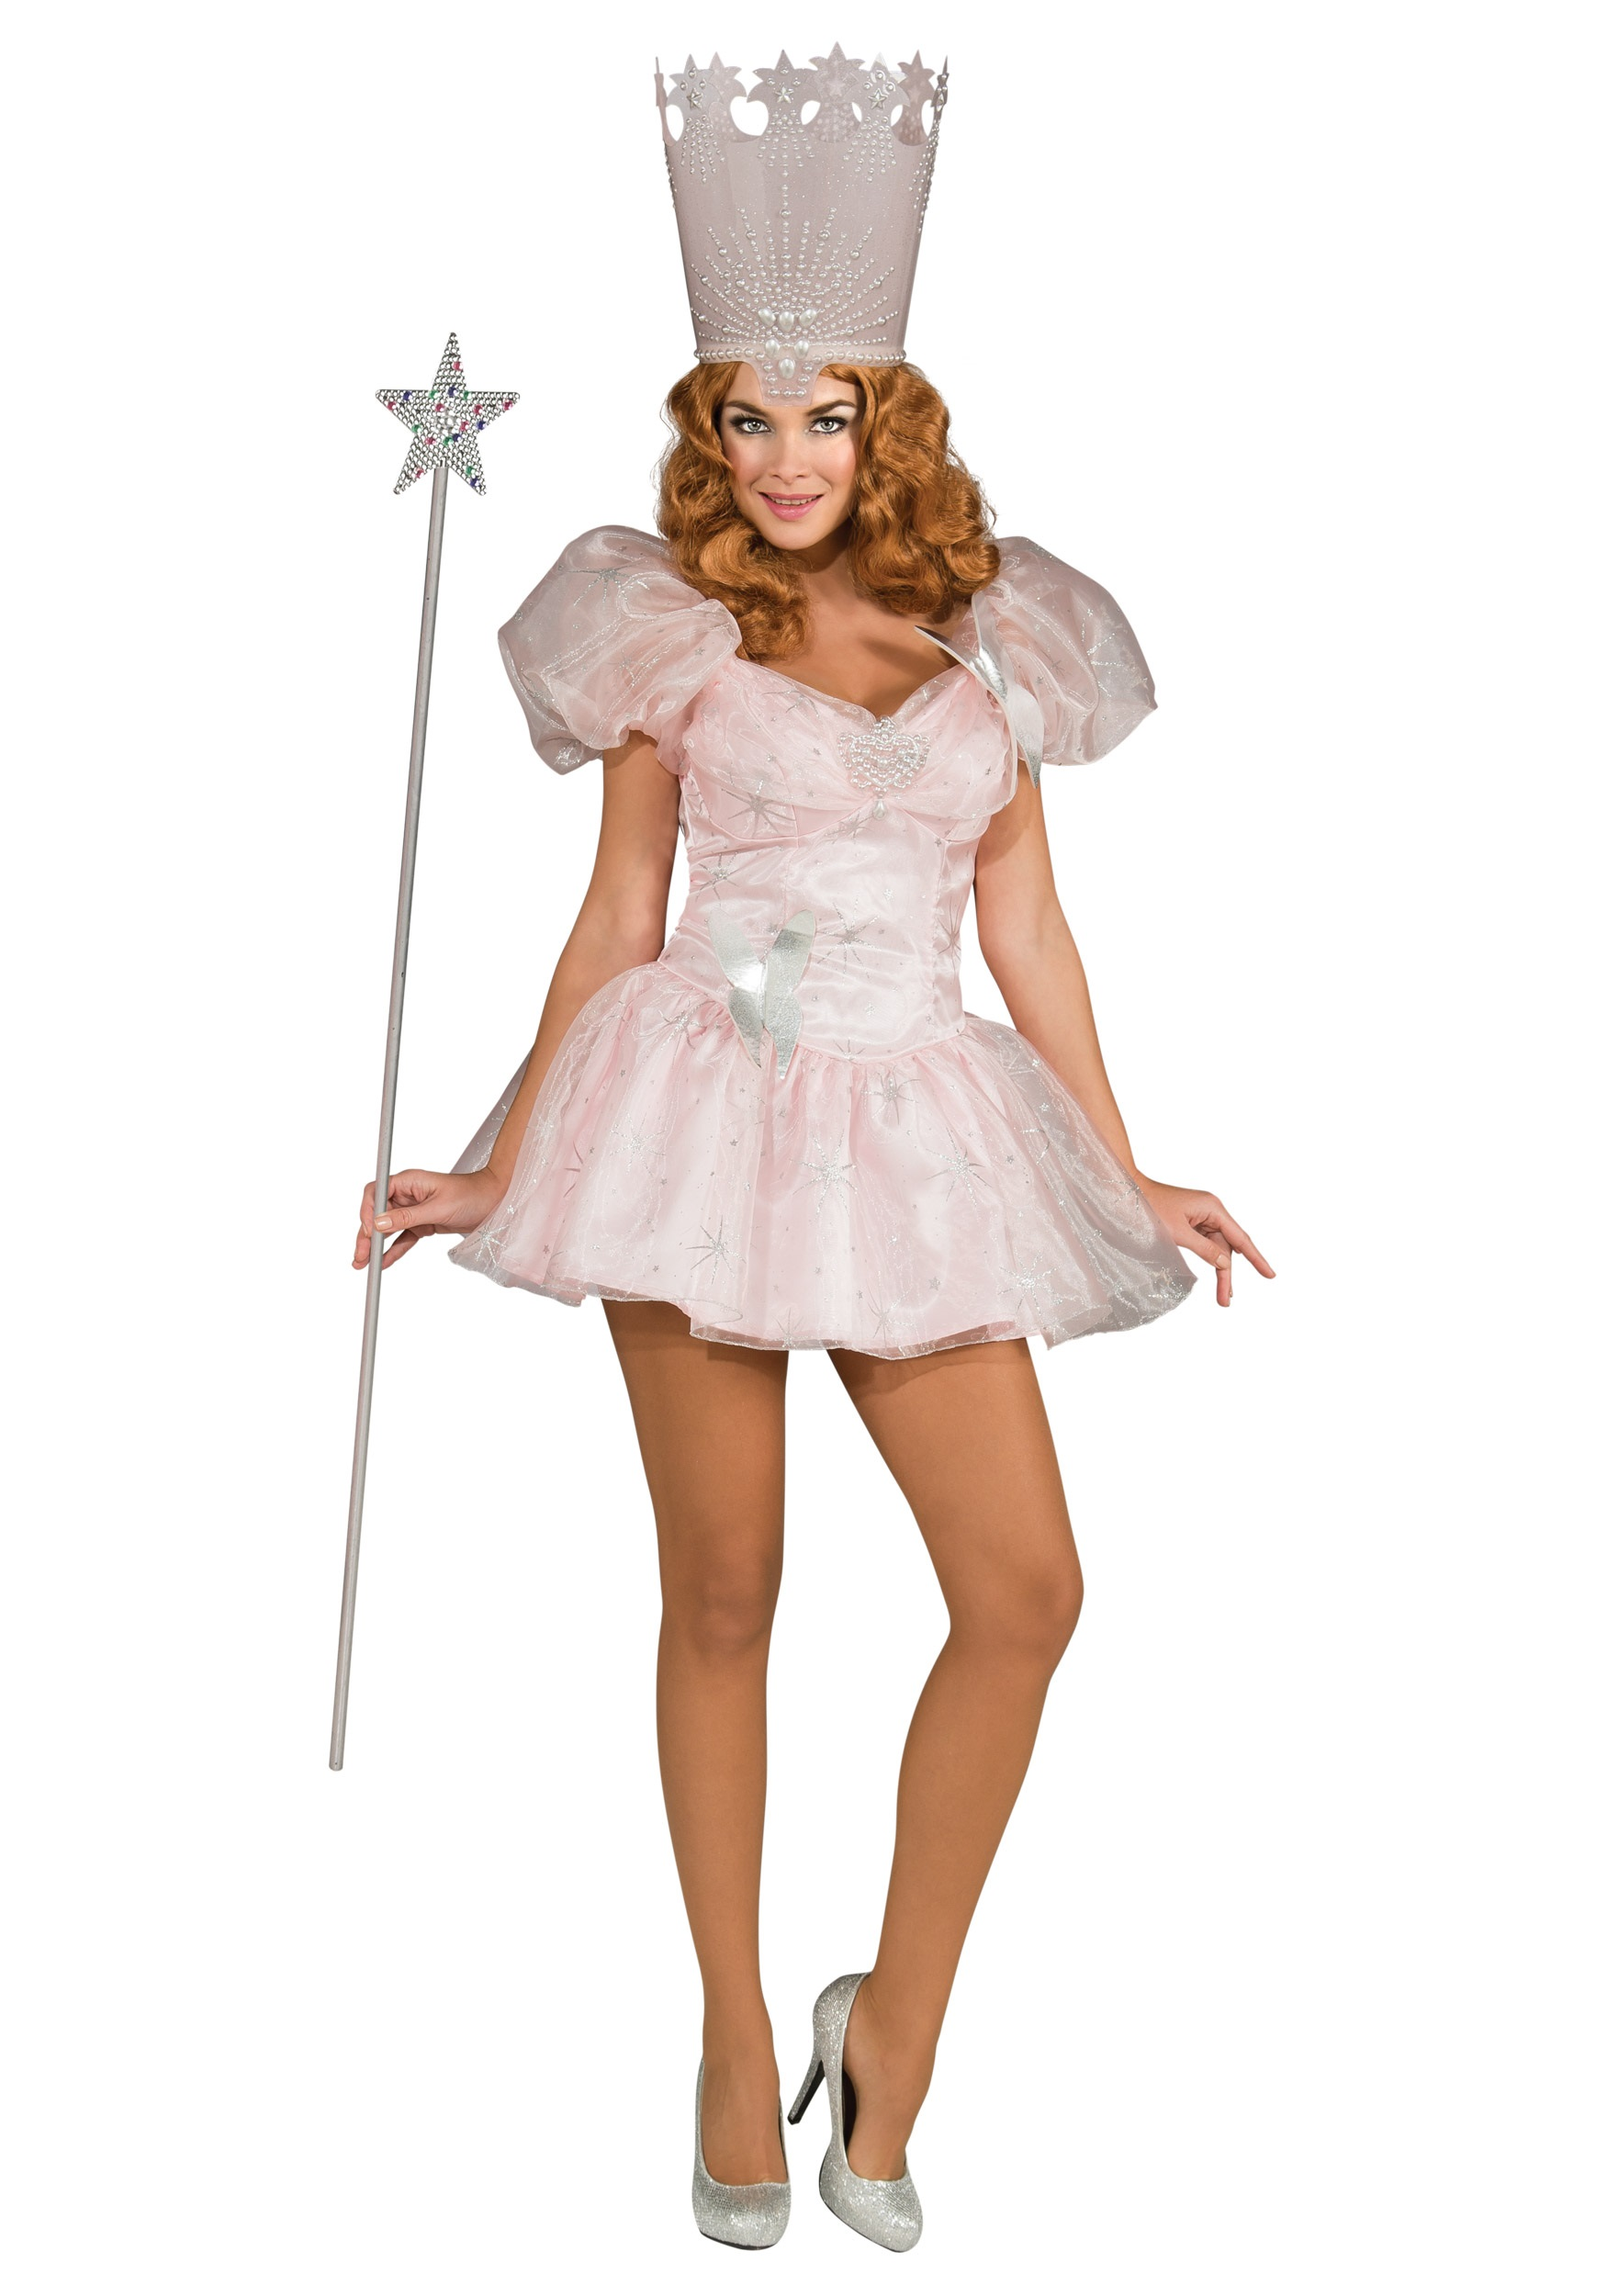 Wizard of Oz Glinda Costumes - HalloweenCostumes.com